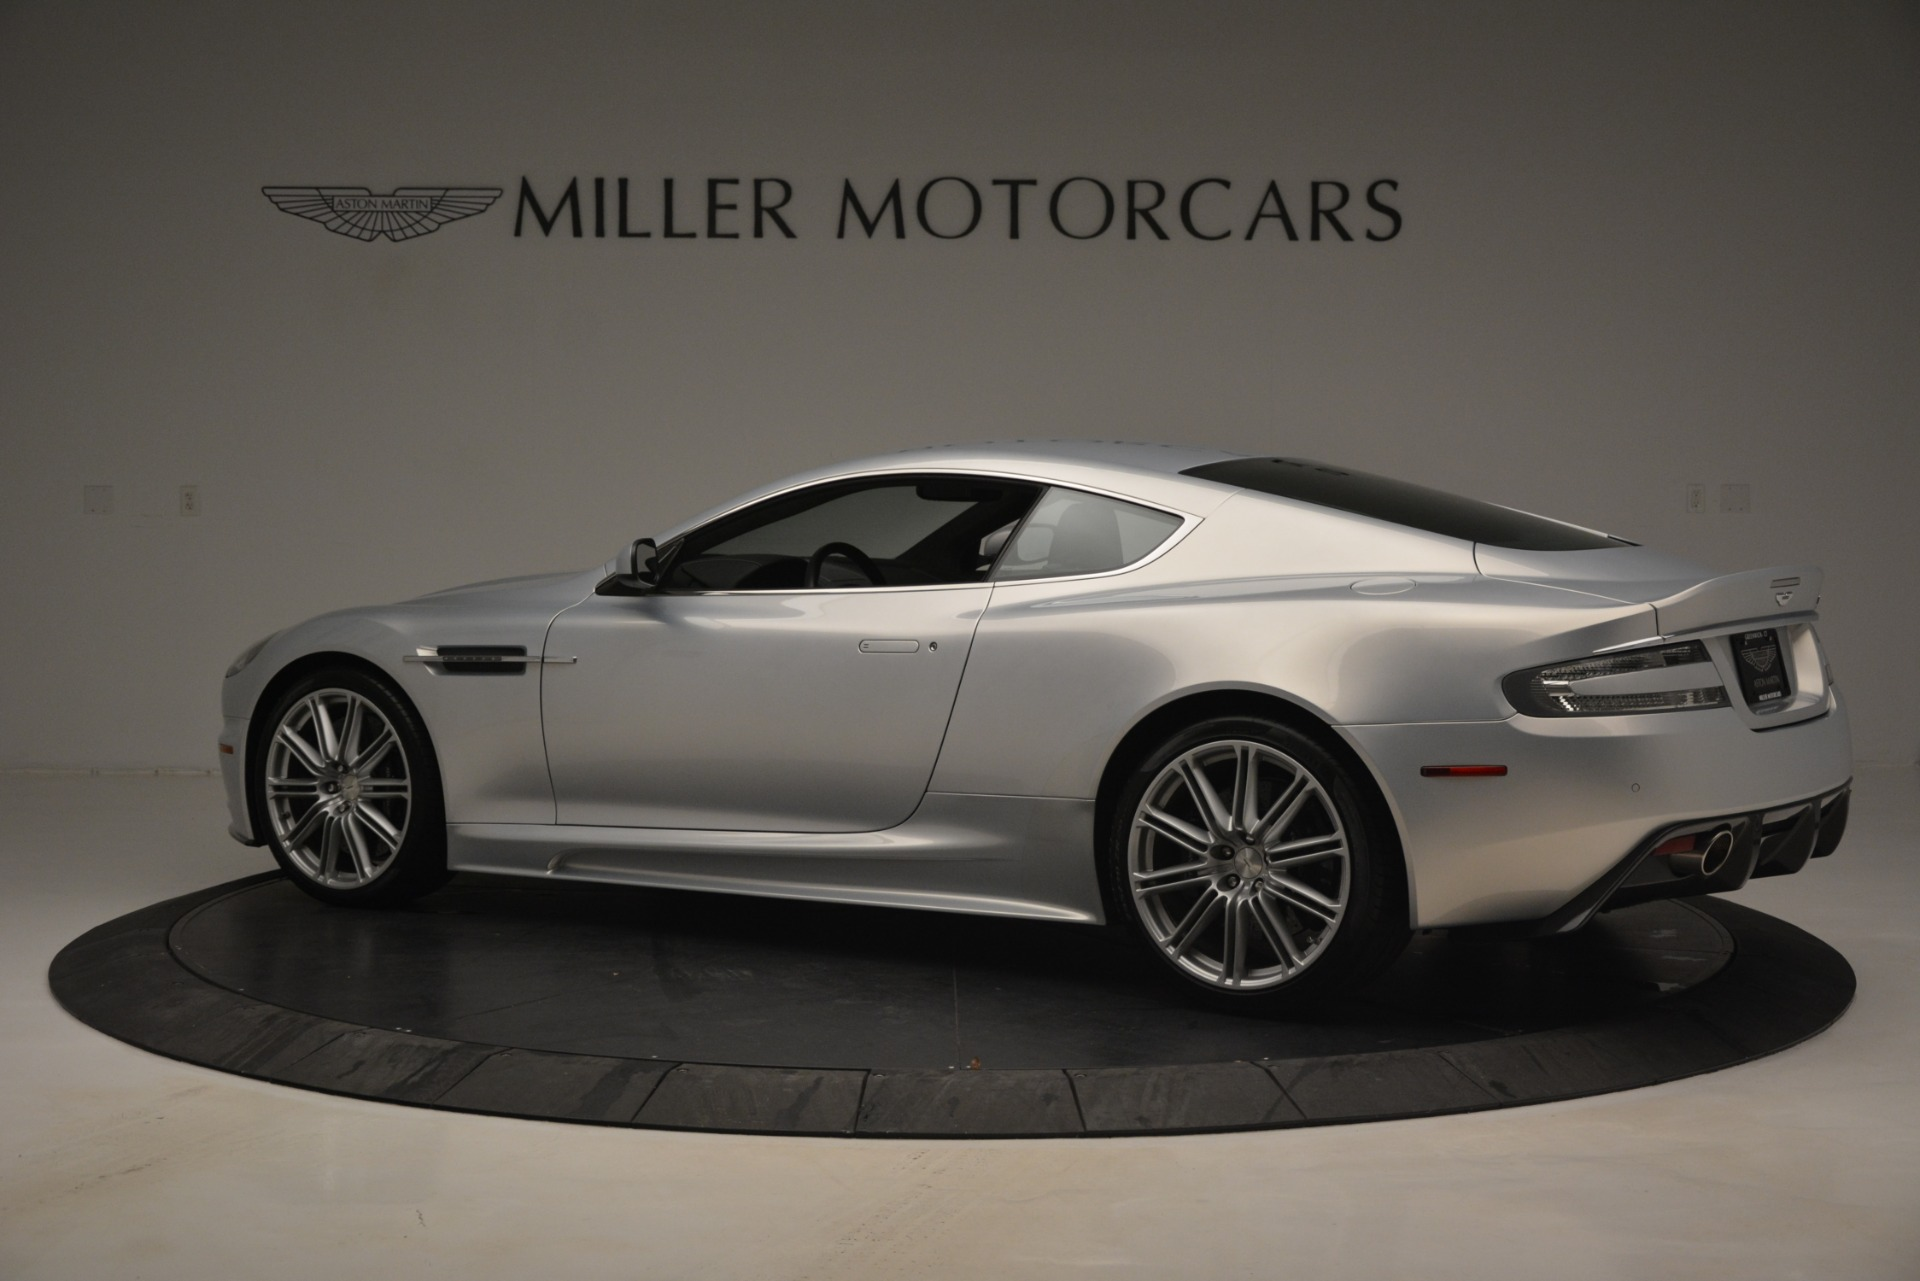 Used 2009 Aston Martin DBS Coupe For Sale In Greenwich, CT 3033_p4